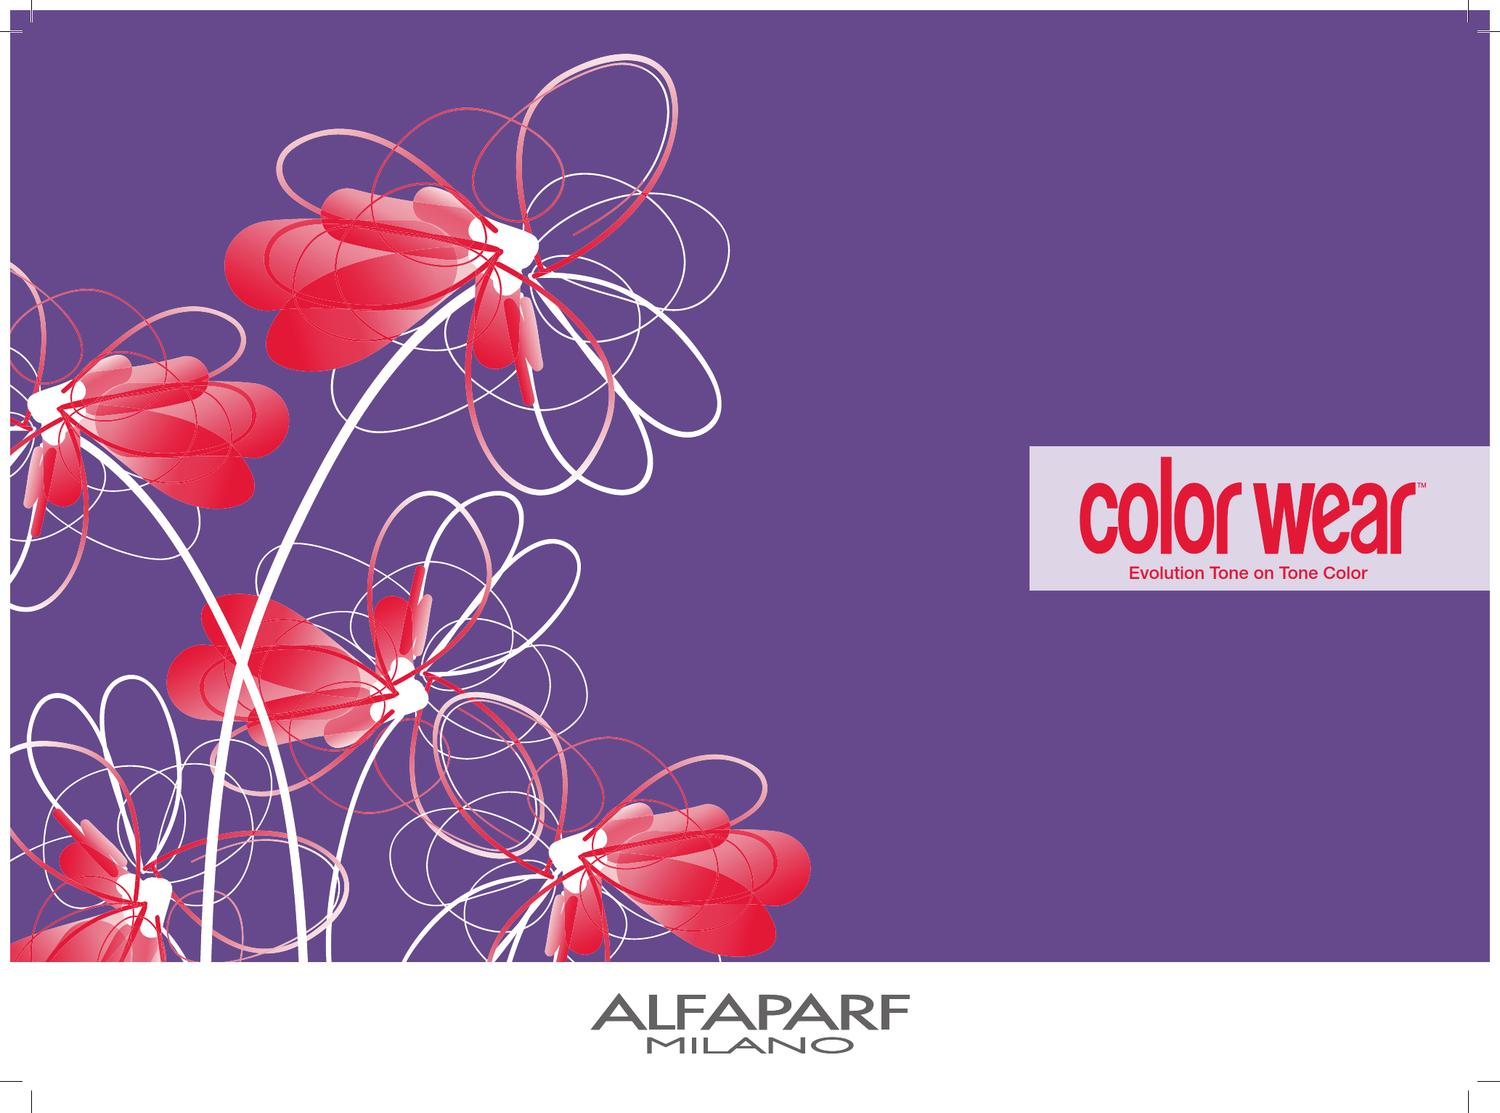 Alfaparf Milano Usa Color Wear Brochure By Alfaparf Milano Usa Issuu